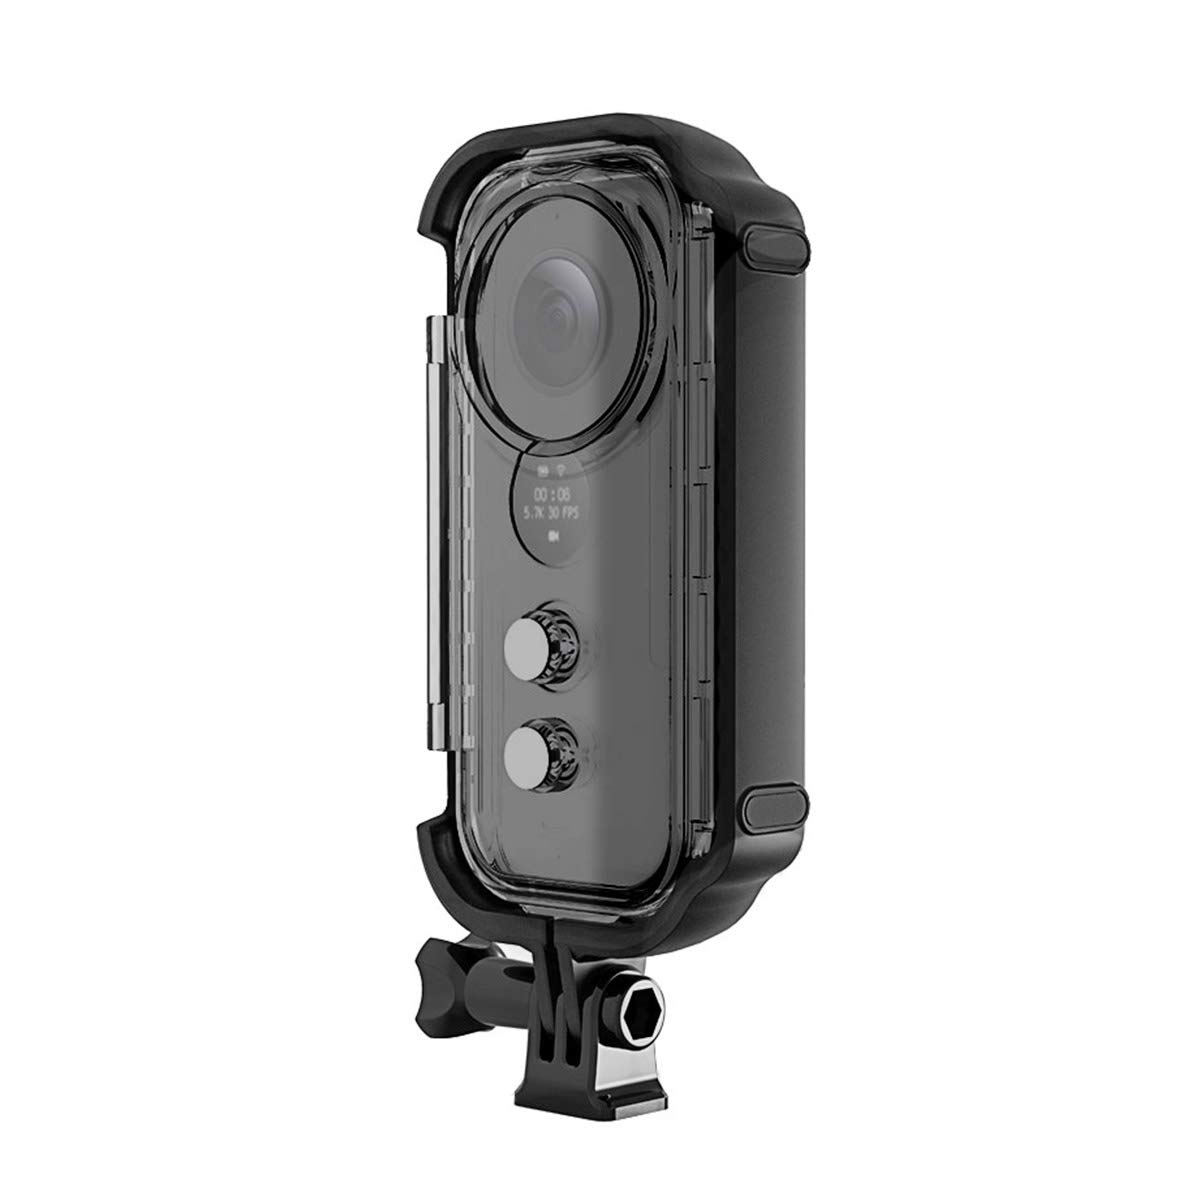 O'woda New Version Insta360 ONE X Waterproof Case Housing Diving Case for Insta360 One X Action Camera Accessories (Transparent) by O'woda